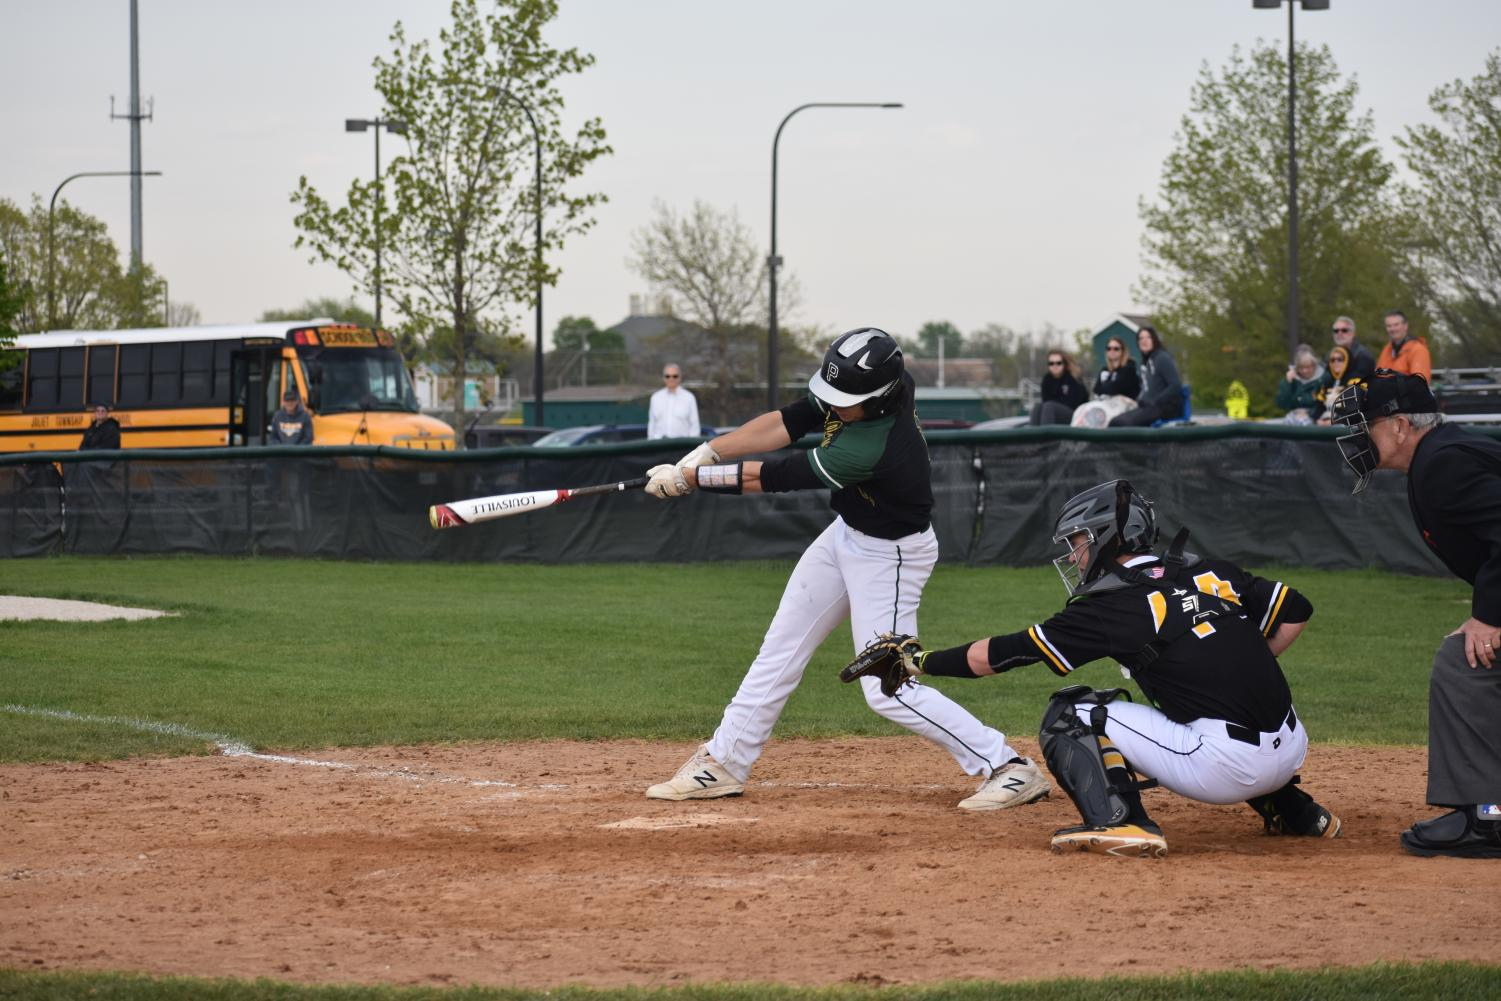 Junior Brandon Micetech connects with the pitch. He has commited to Eastern Illinois University to play baseball.